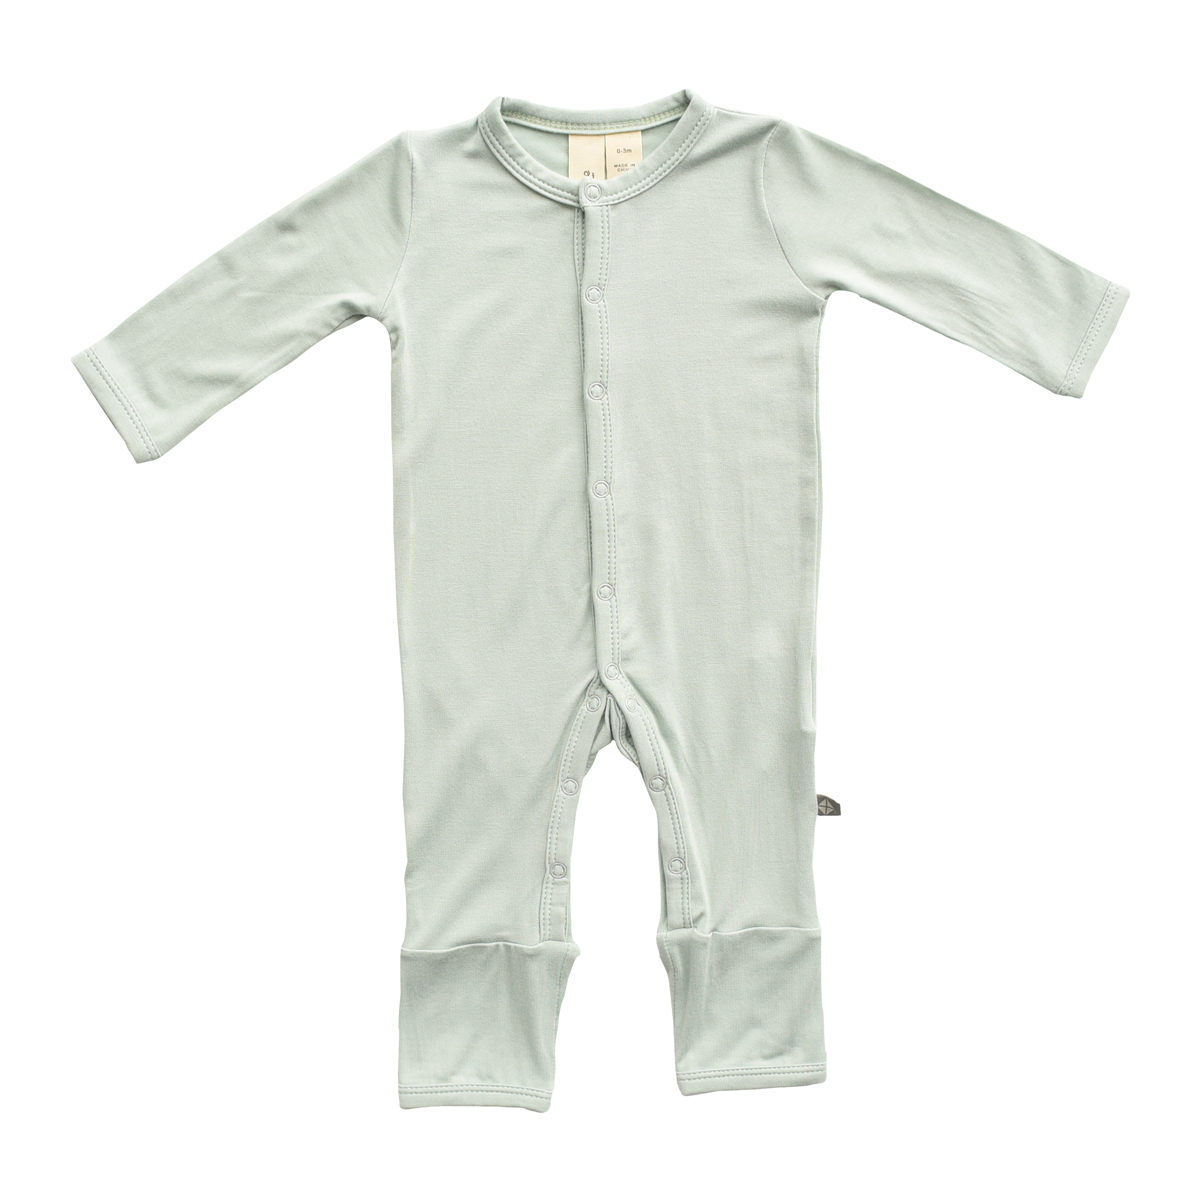 Kyte Baby Rayon from Bamboo Long Sleeve Footless Romper in Sage